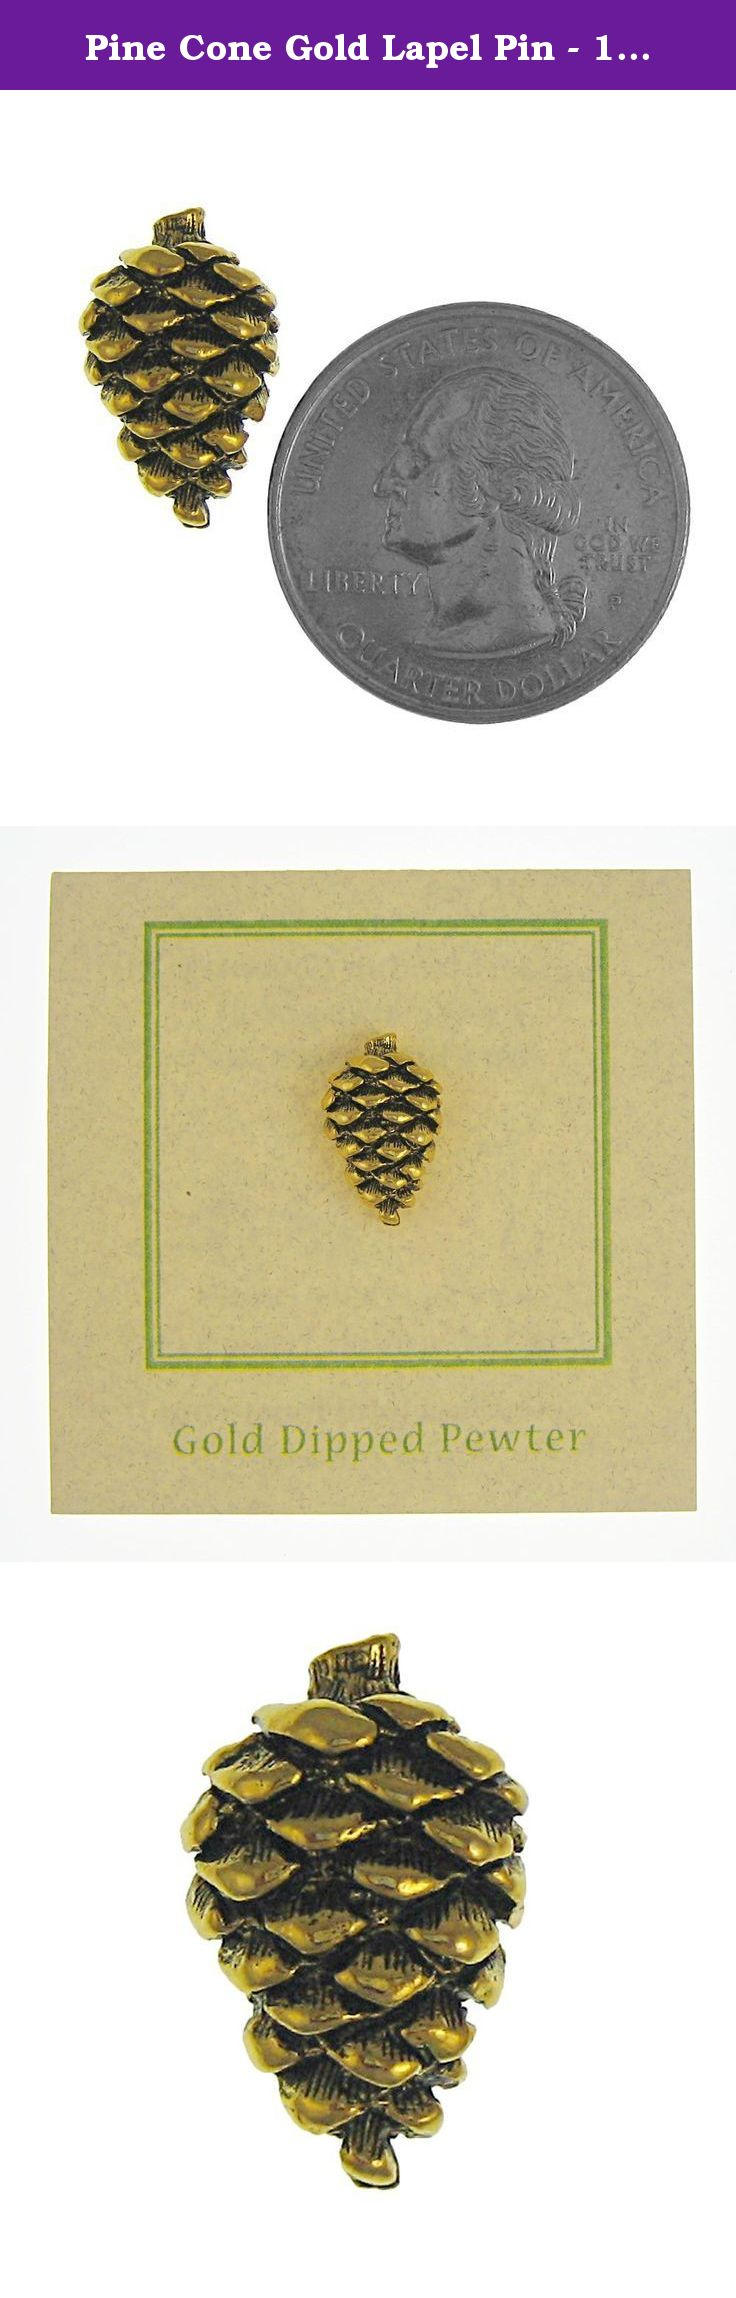 Superb Pine Cone Gold Lapel Pin   100 Count. The Longest Lived Pine Trees Known